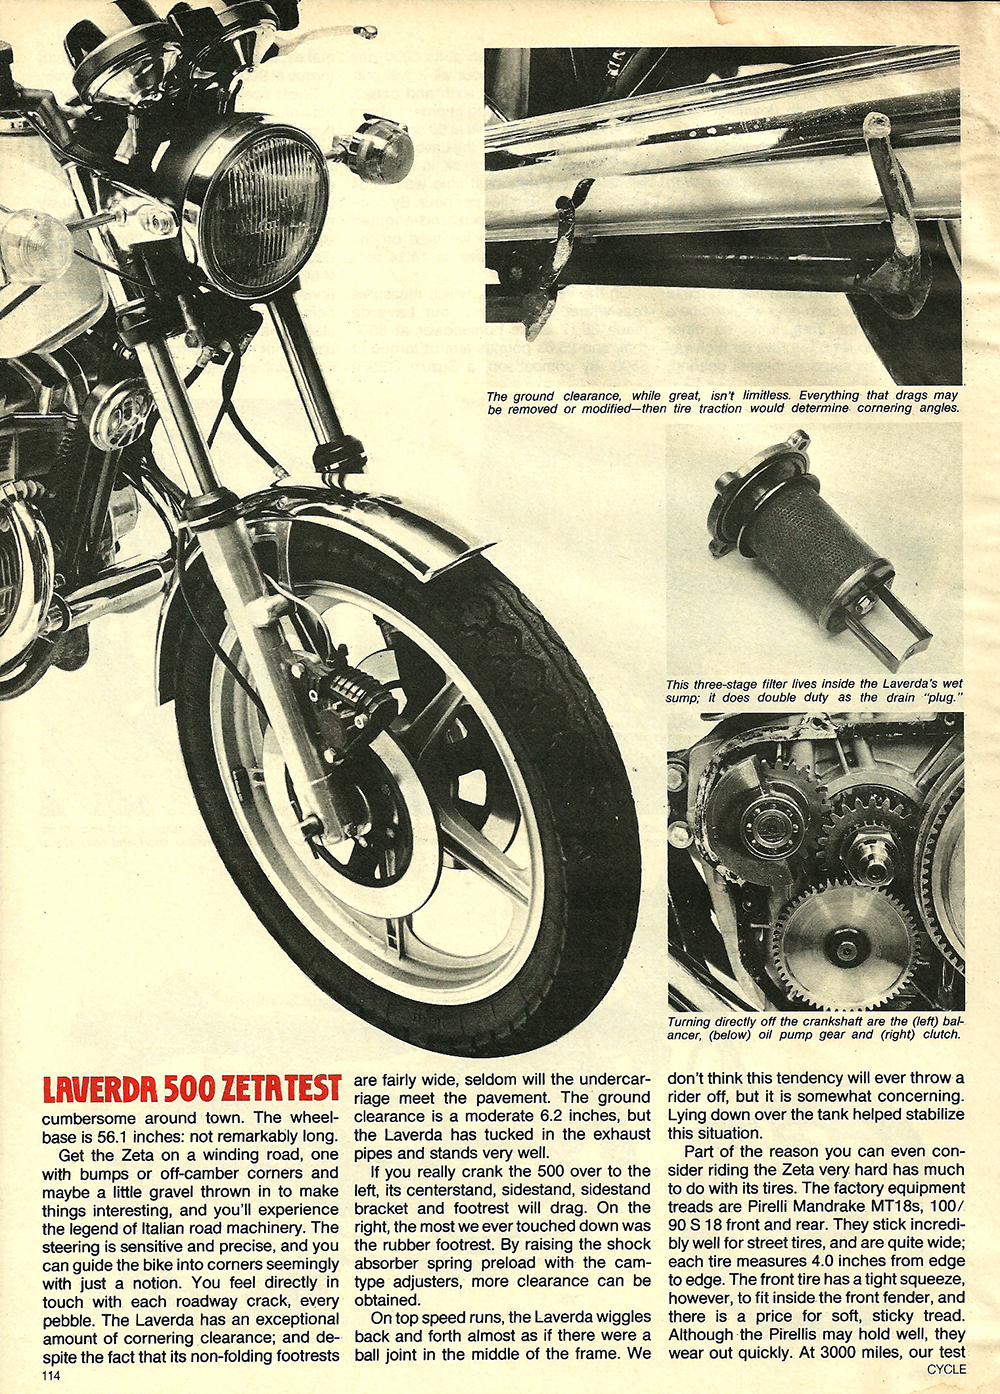 1979 Laverda 500 Zeta road test 5.jpg